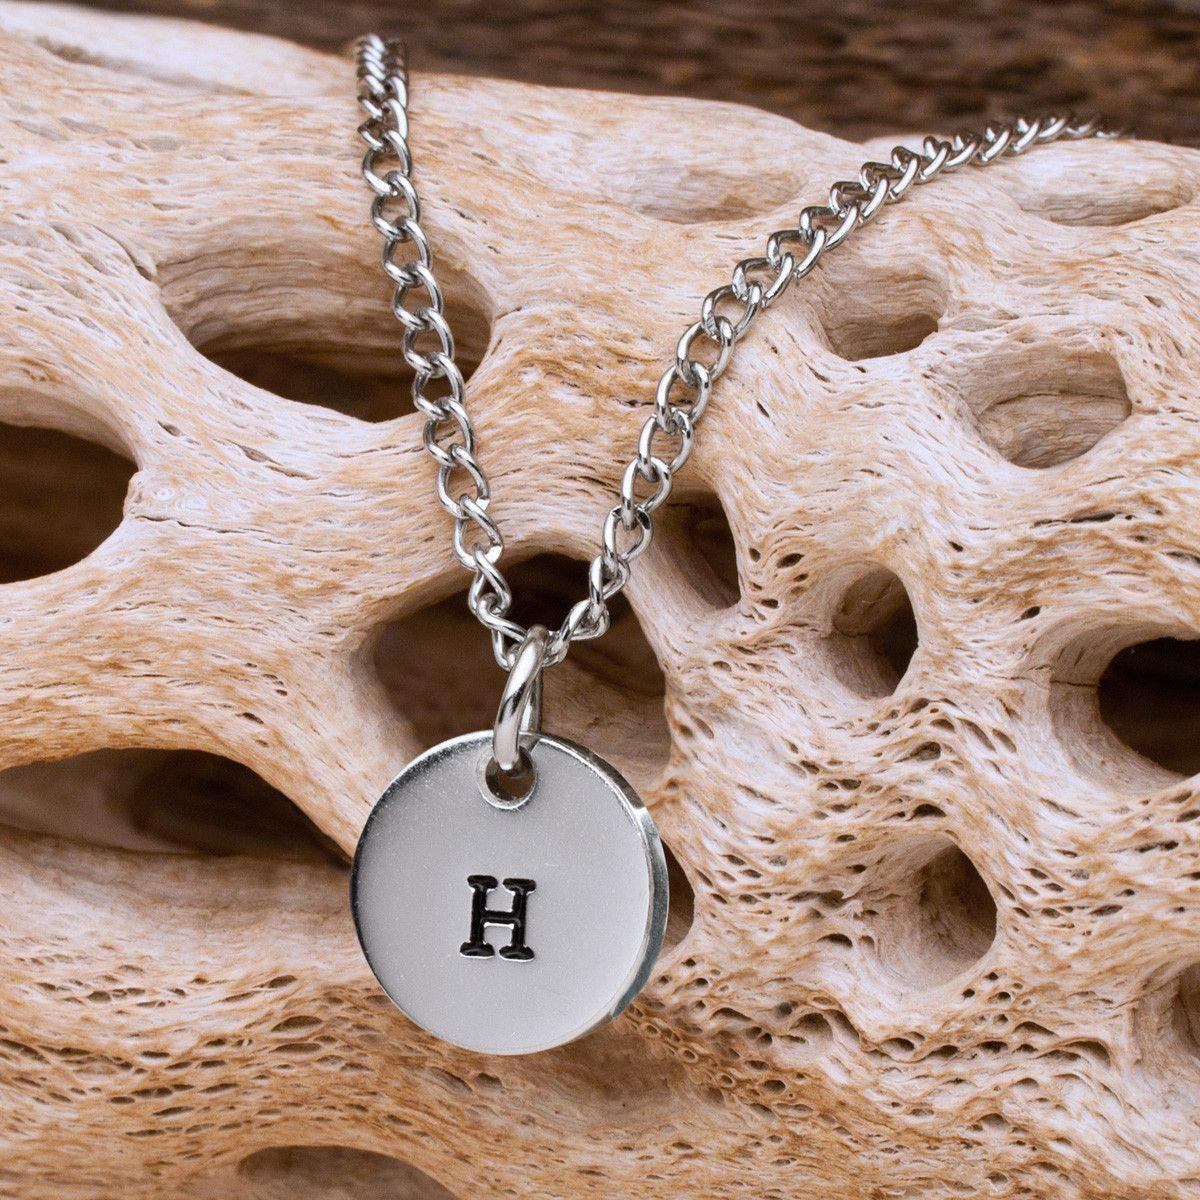 Personalized-Charm-Necklace-with-additional-charm